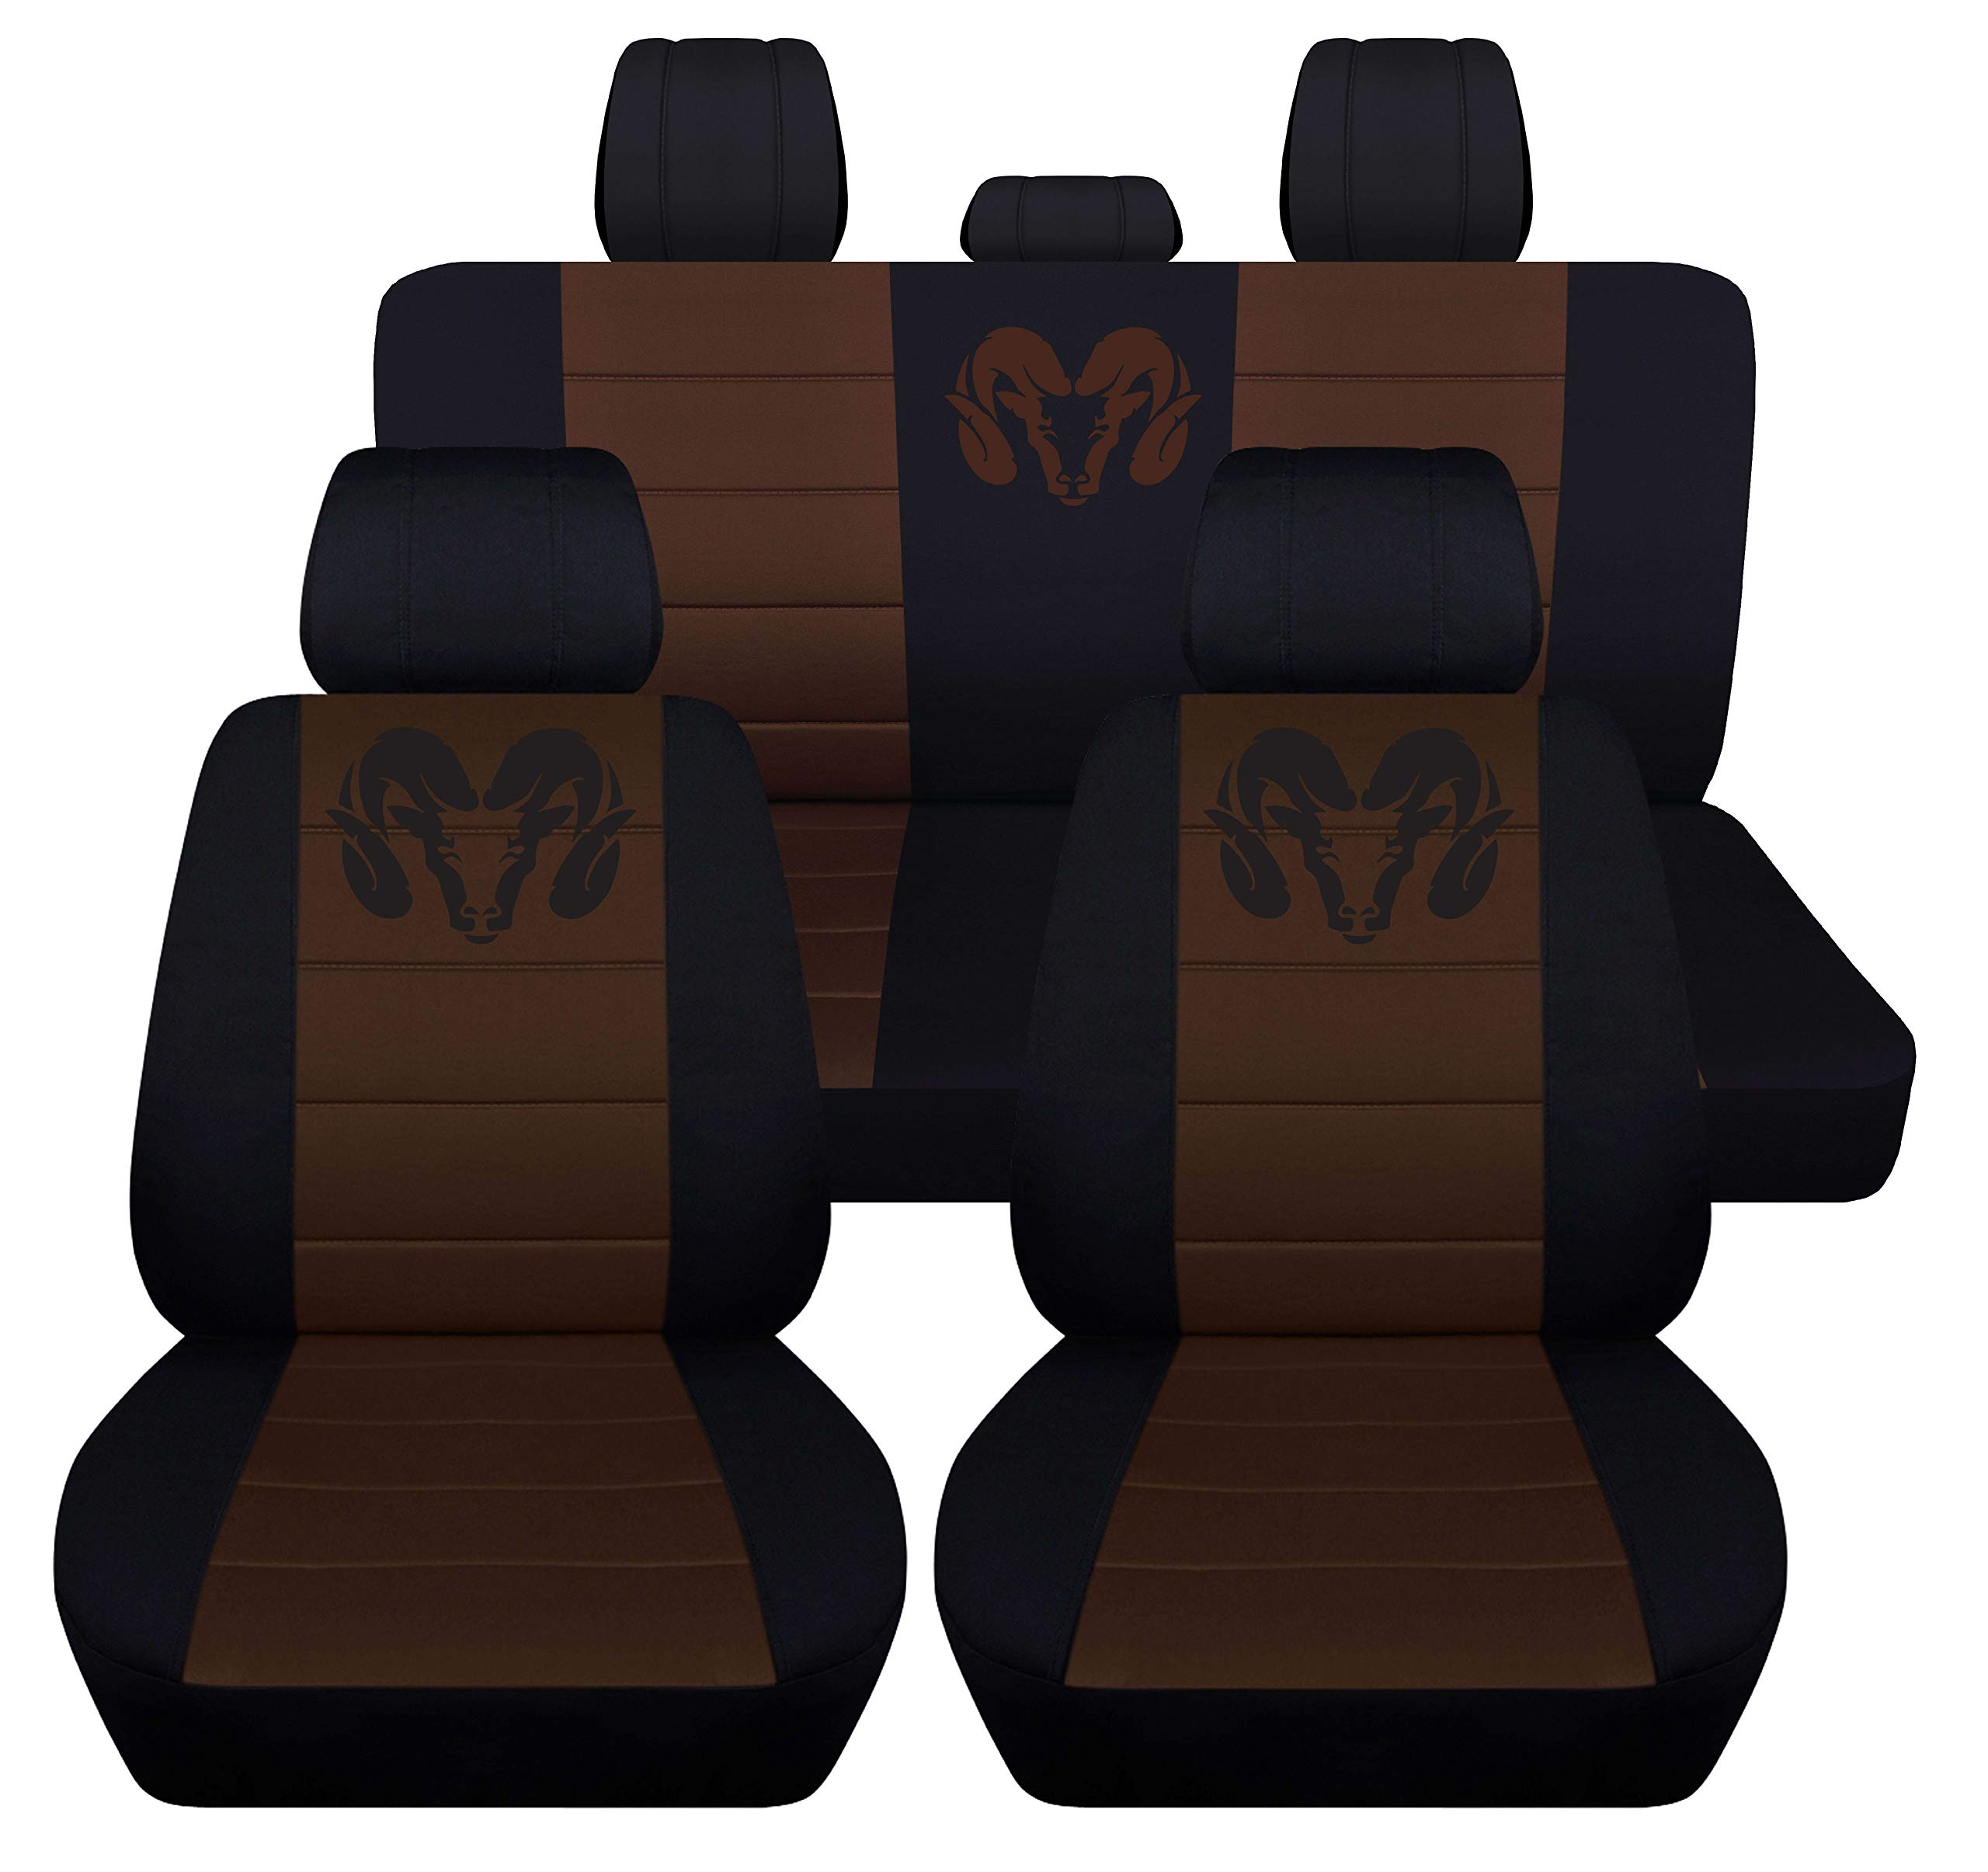 40 20 40 Front and Rear Seat Covers for 2013 to 2018 Dodge Ram 22 Color Options (Solid Rear Bench, Black Brown) by Designcovers (Image #1)